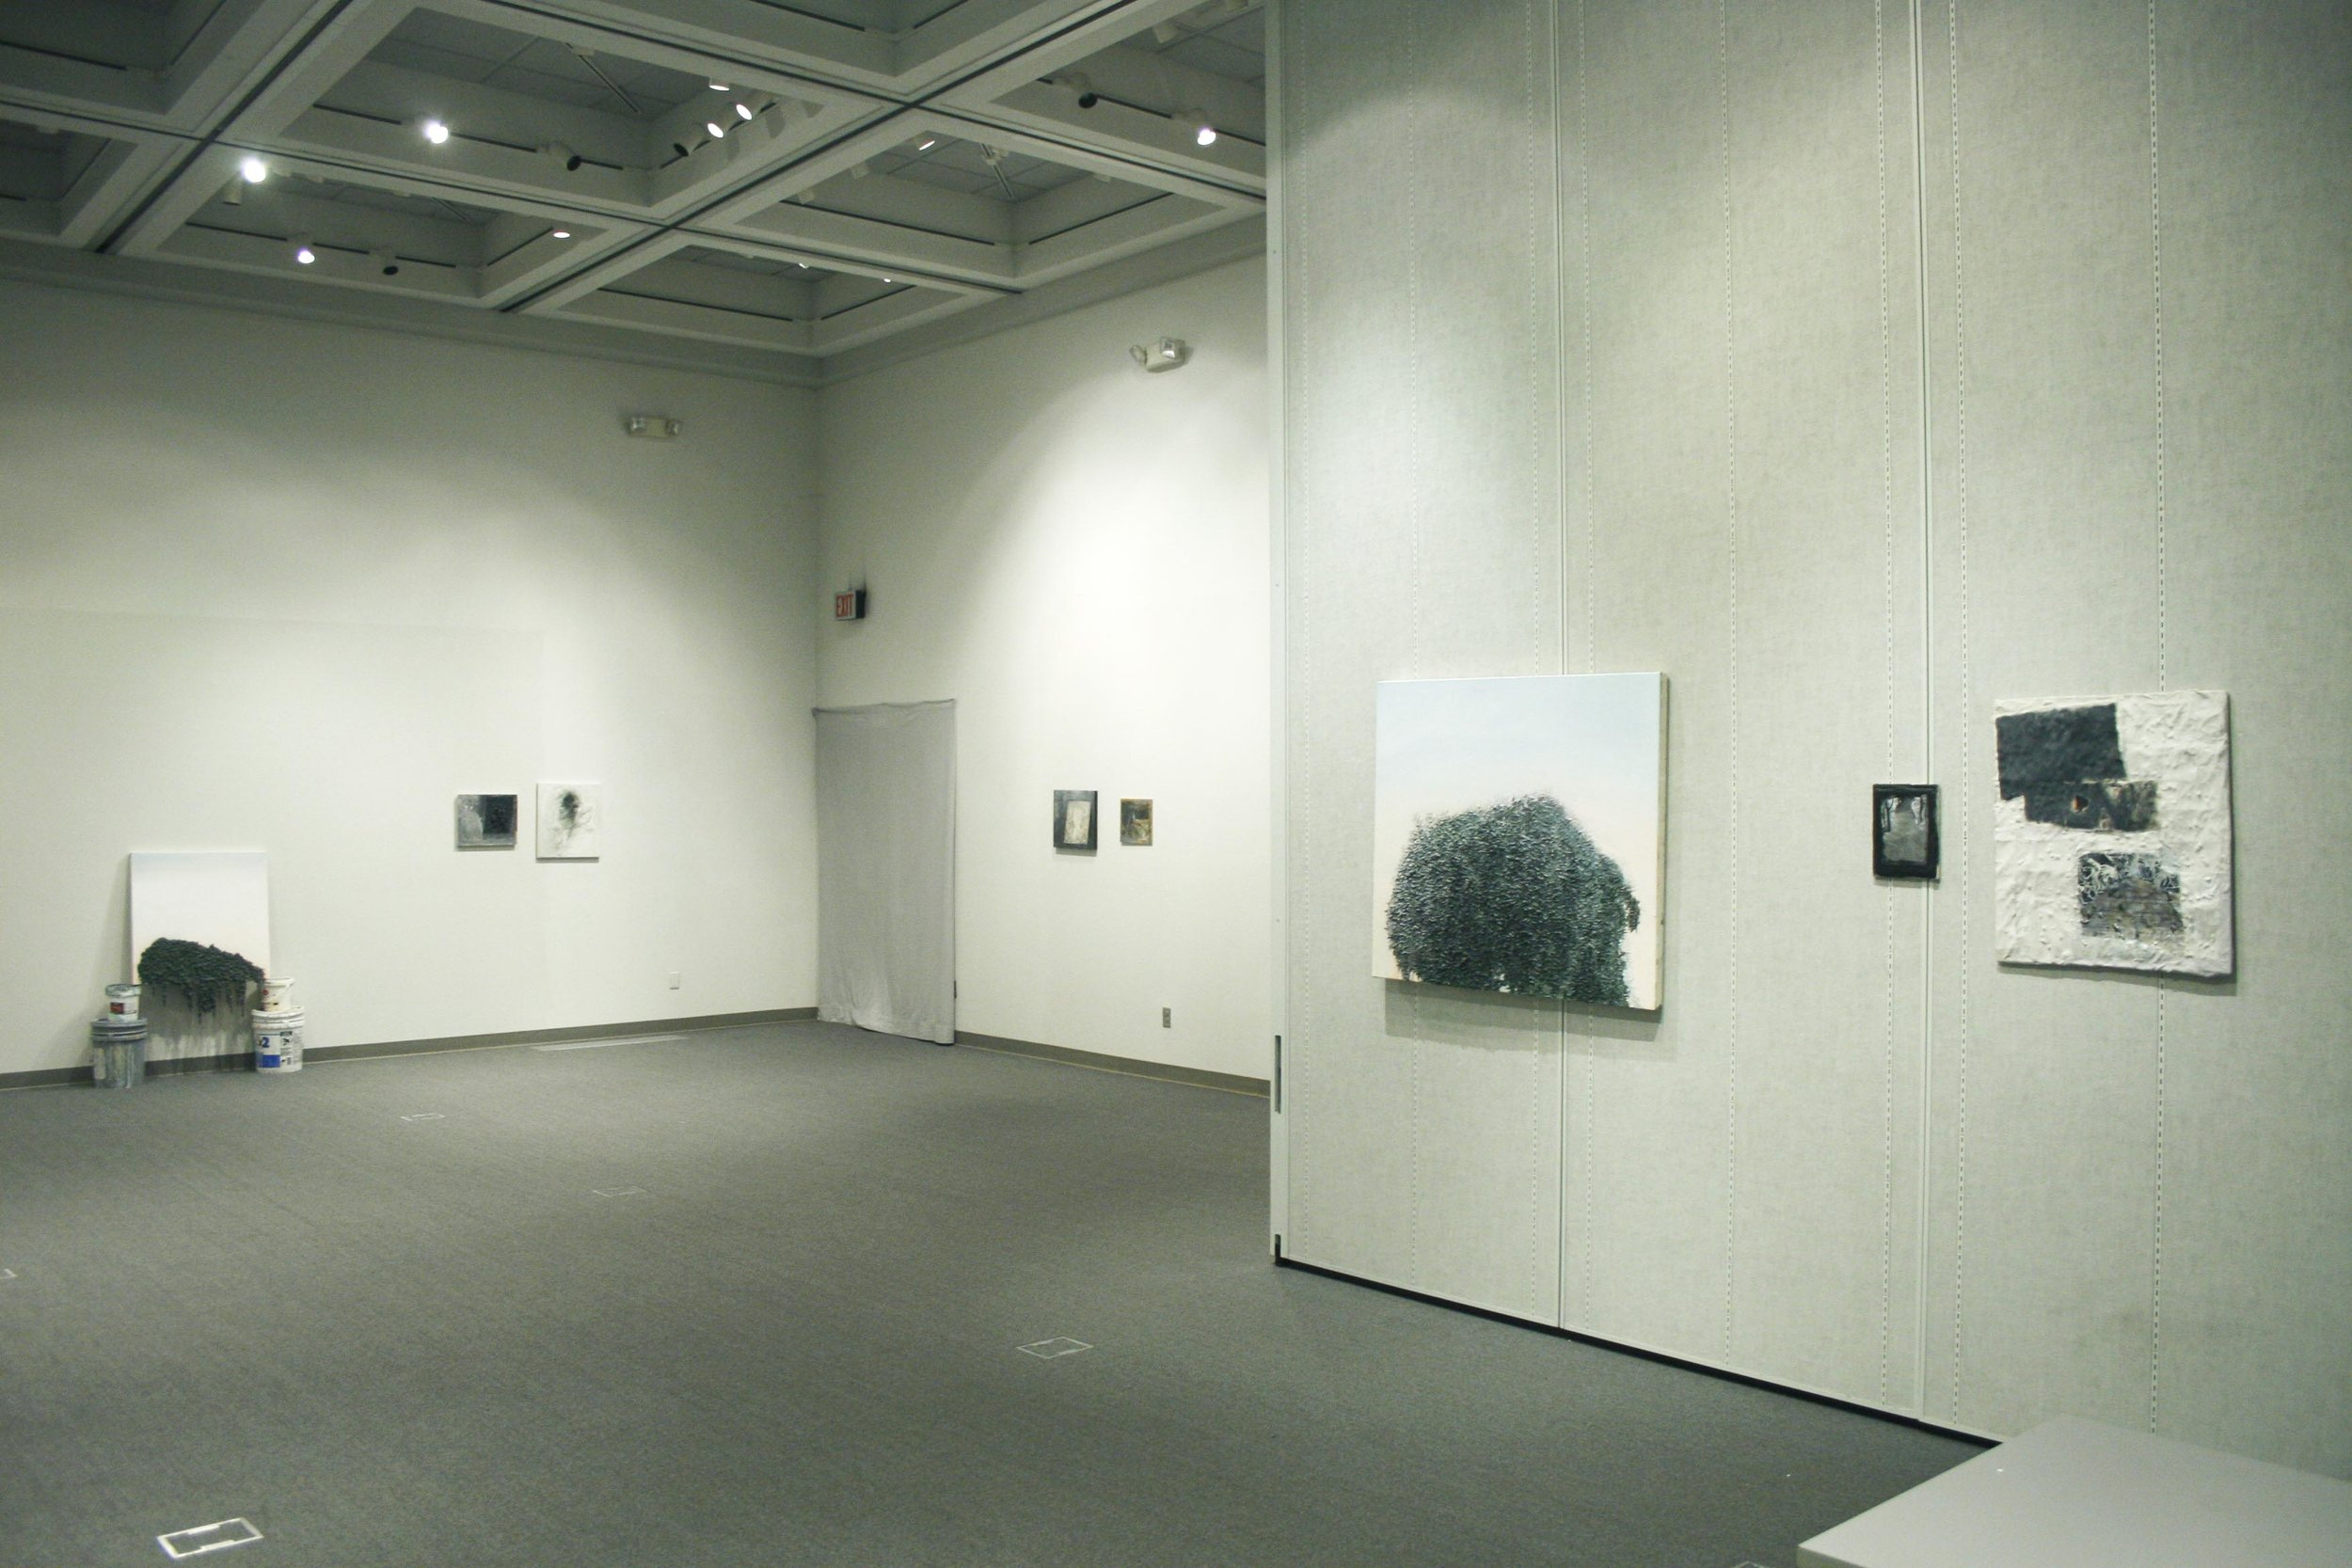 Installation view, 2014   Grays Pinks & Blues   Jones Gallery, Bakersfield